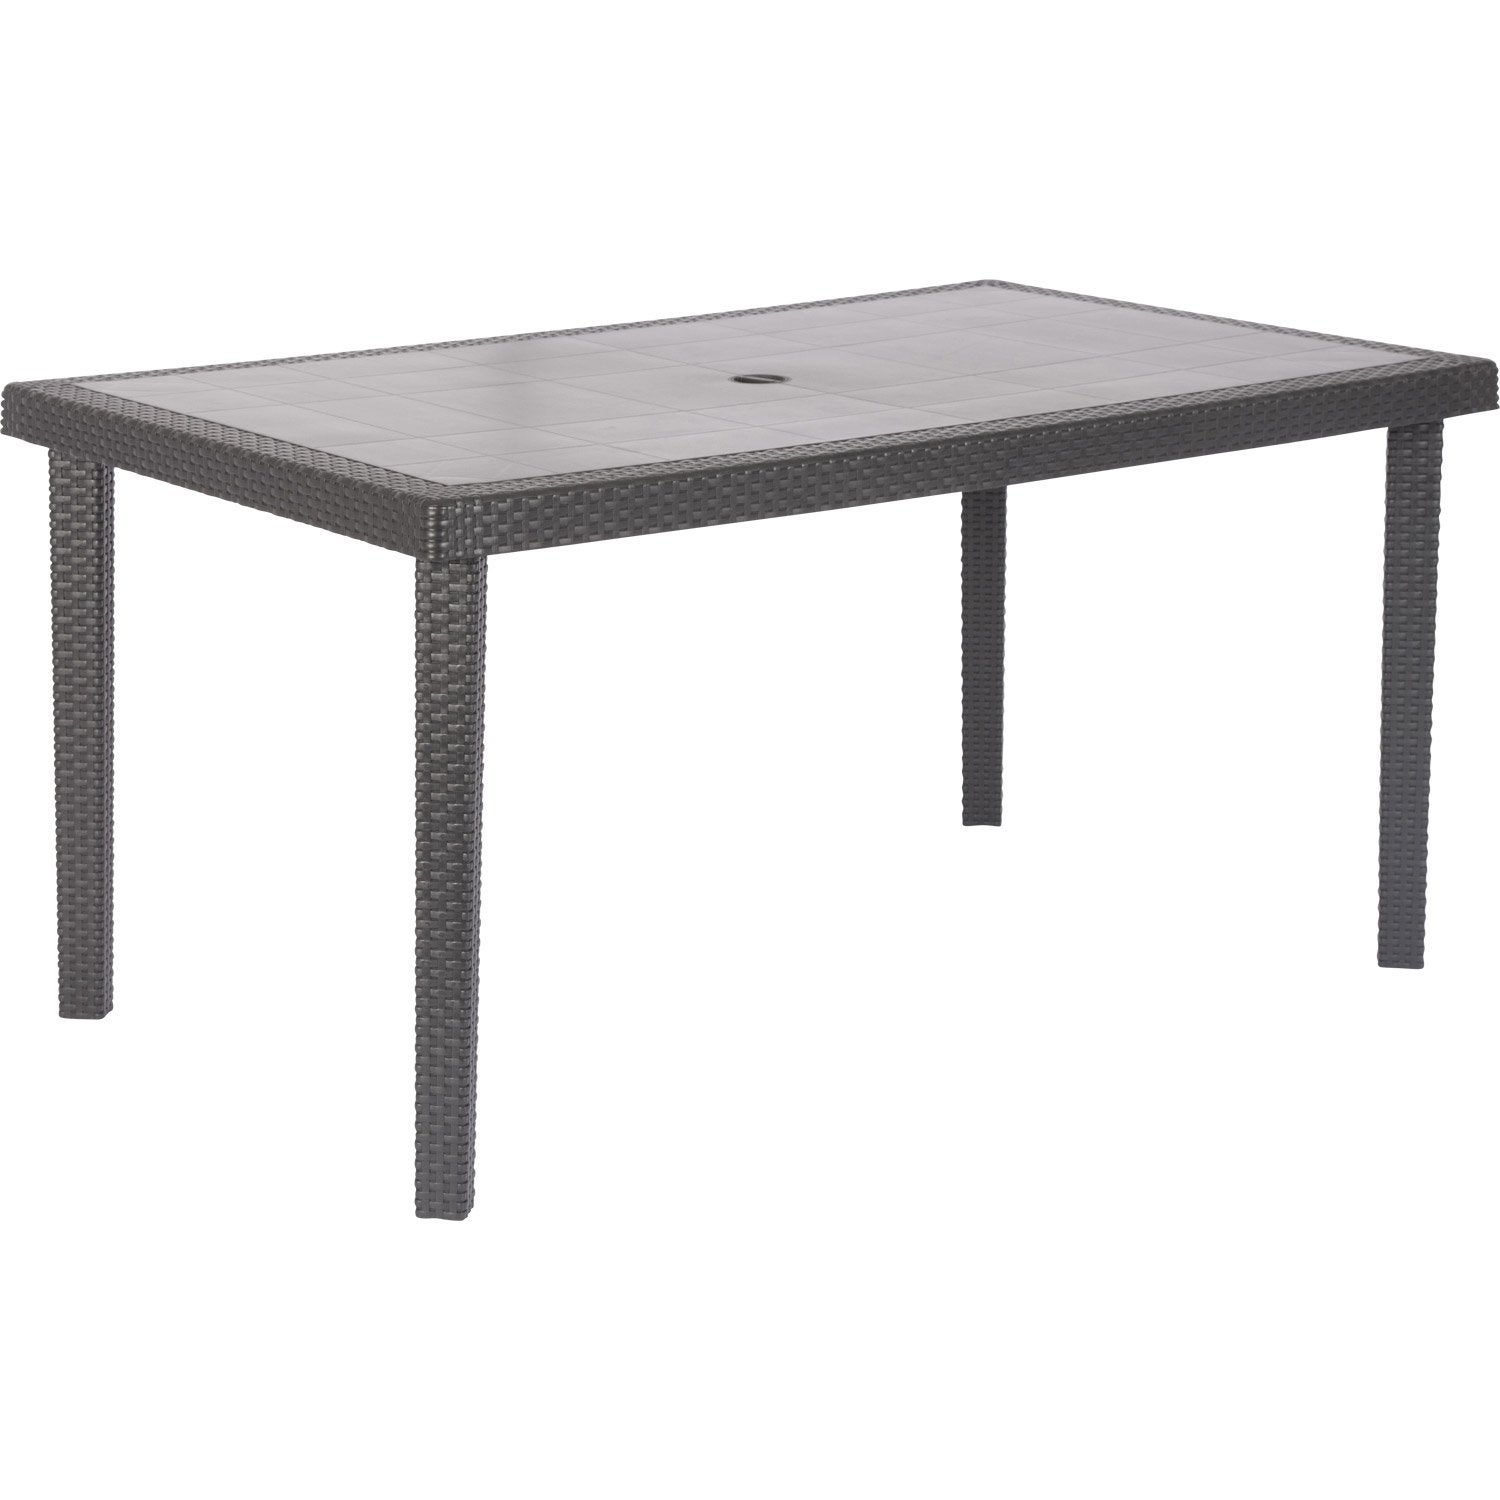 Table de jardin boh me rectangulaire anthracite 6 - Pied de table basse leroy merlin ...